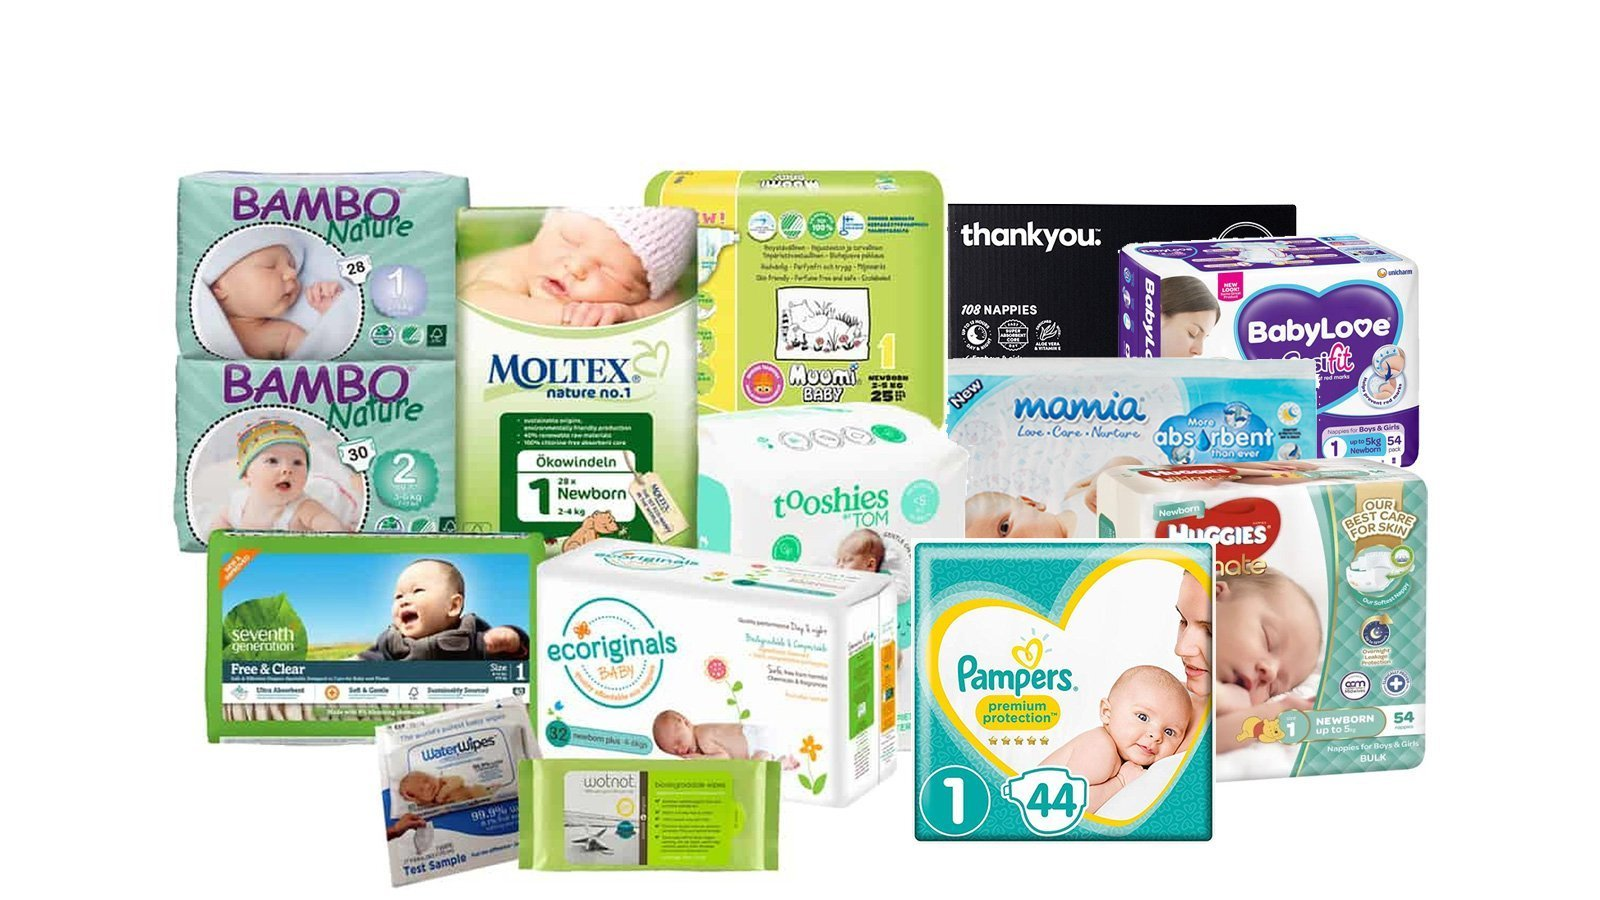 Australia newborn nappy brands - Huggies, Babylove, Aldi Mamia, Tooshies by Tom